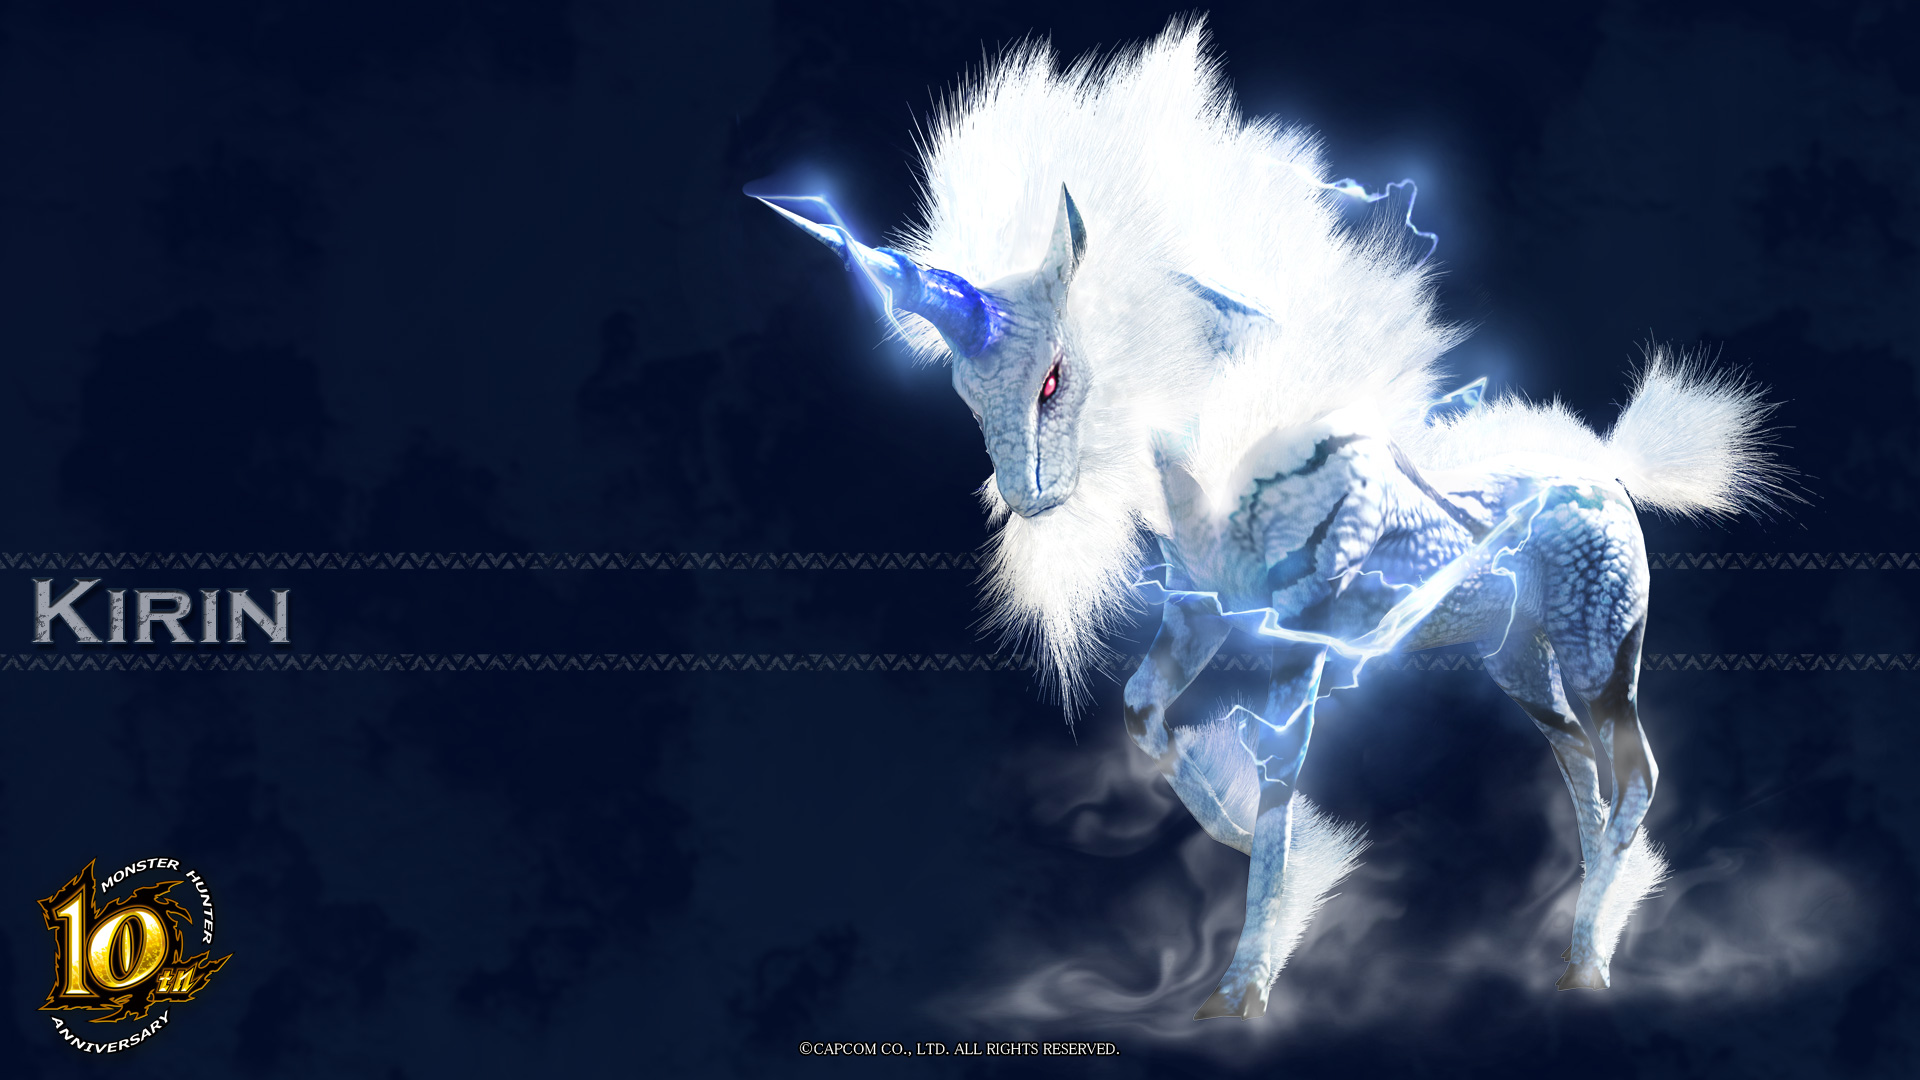 Image   MH 10th Anniversary Kirin Wallpaper 001jpg 1920x1080